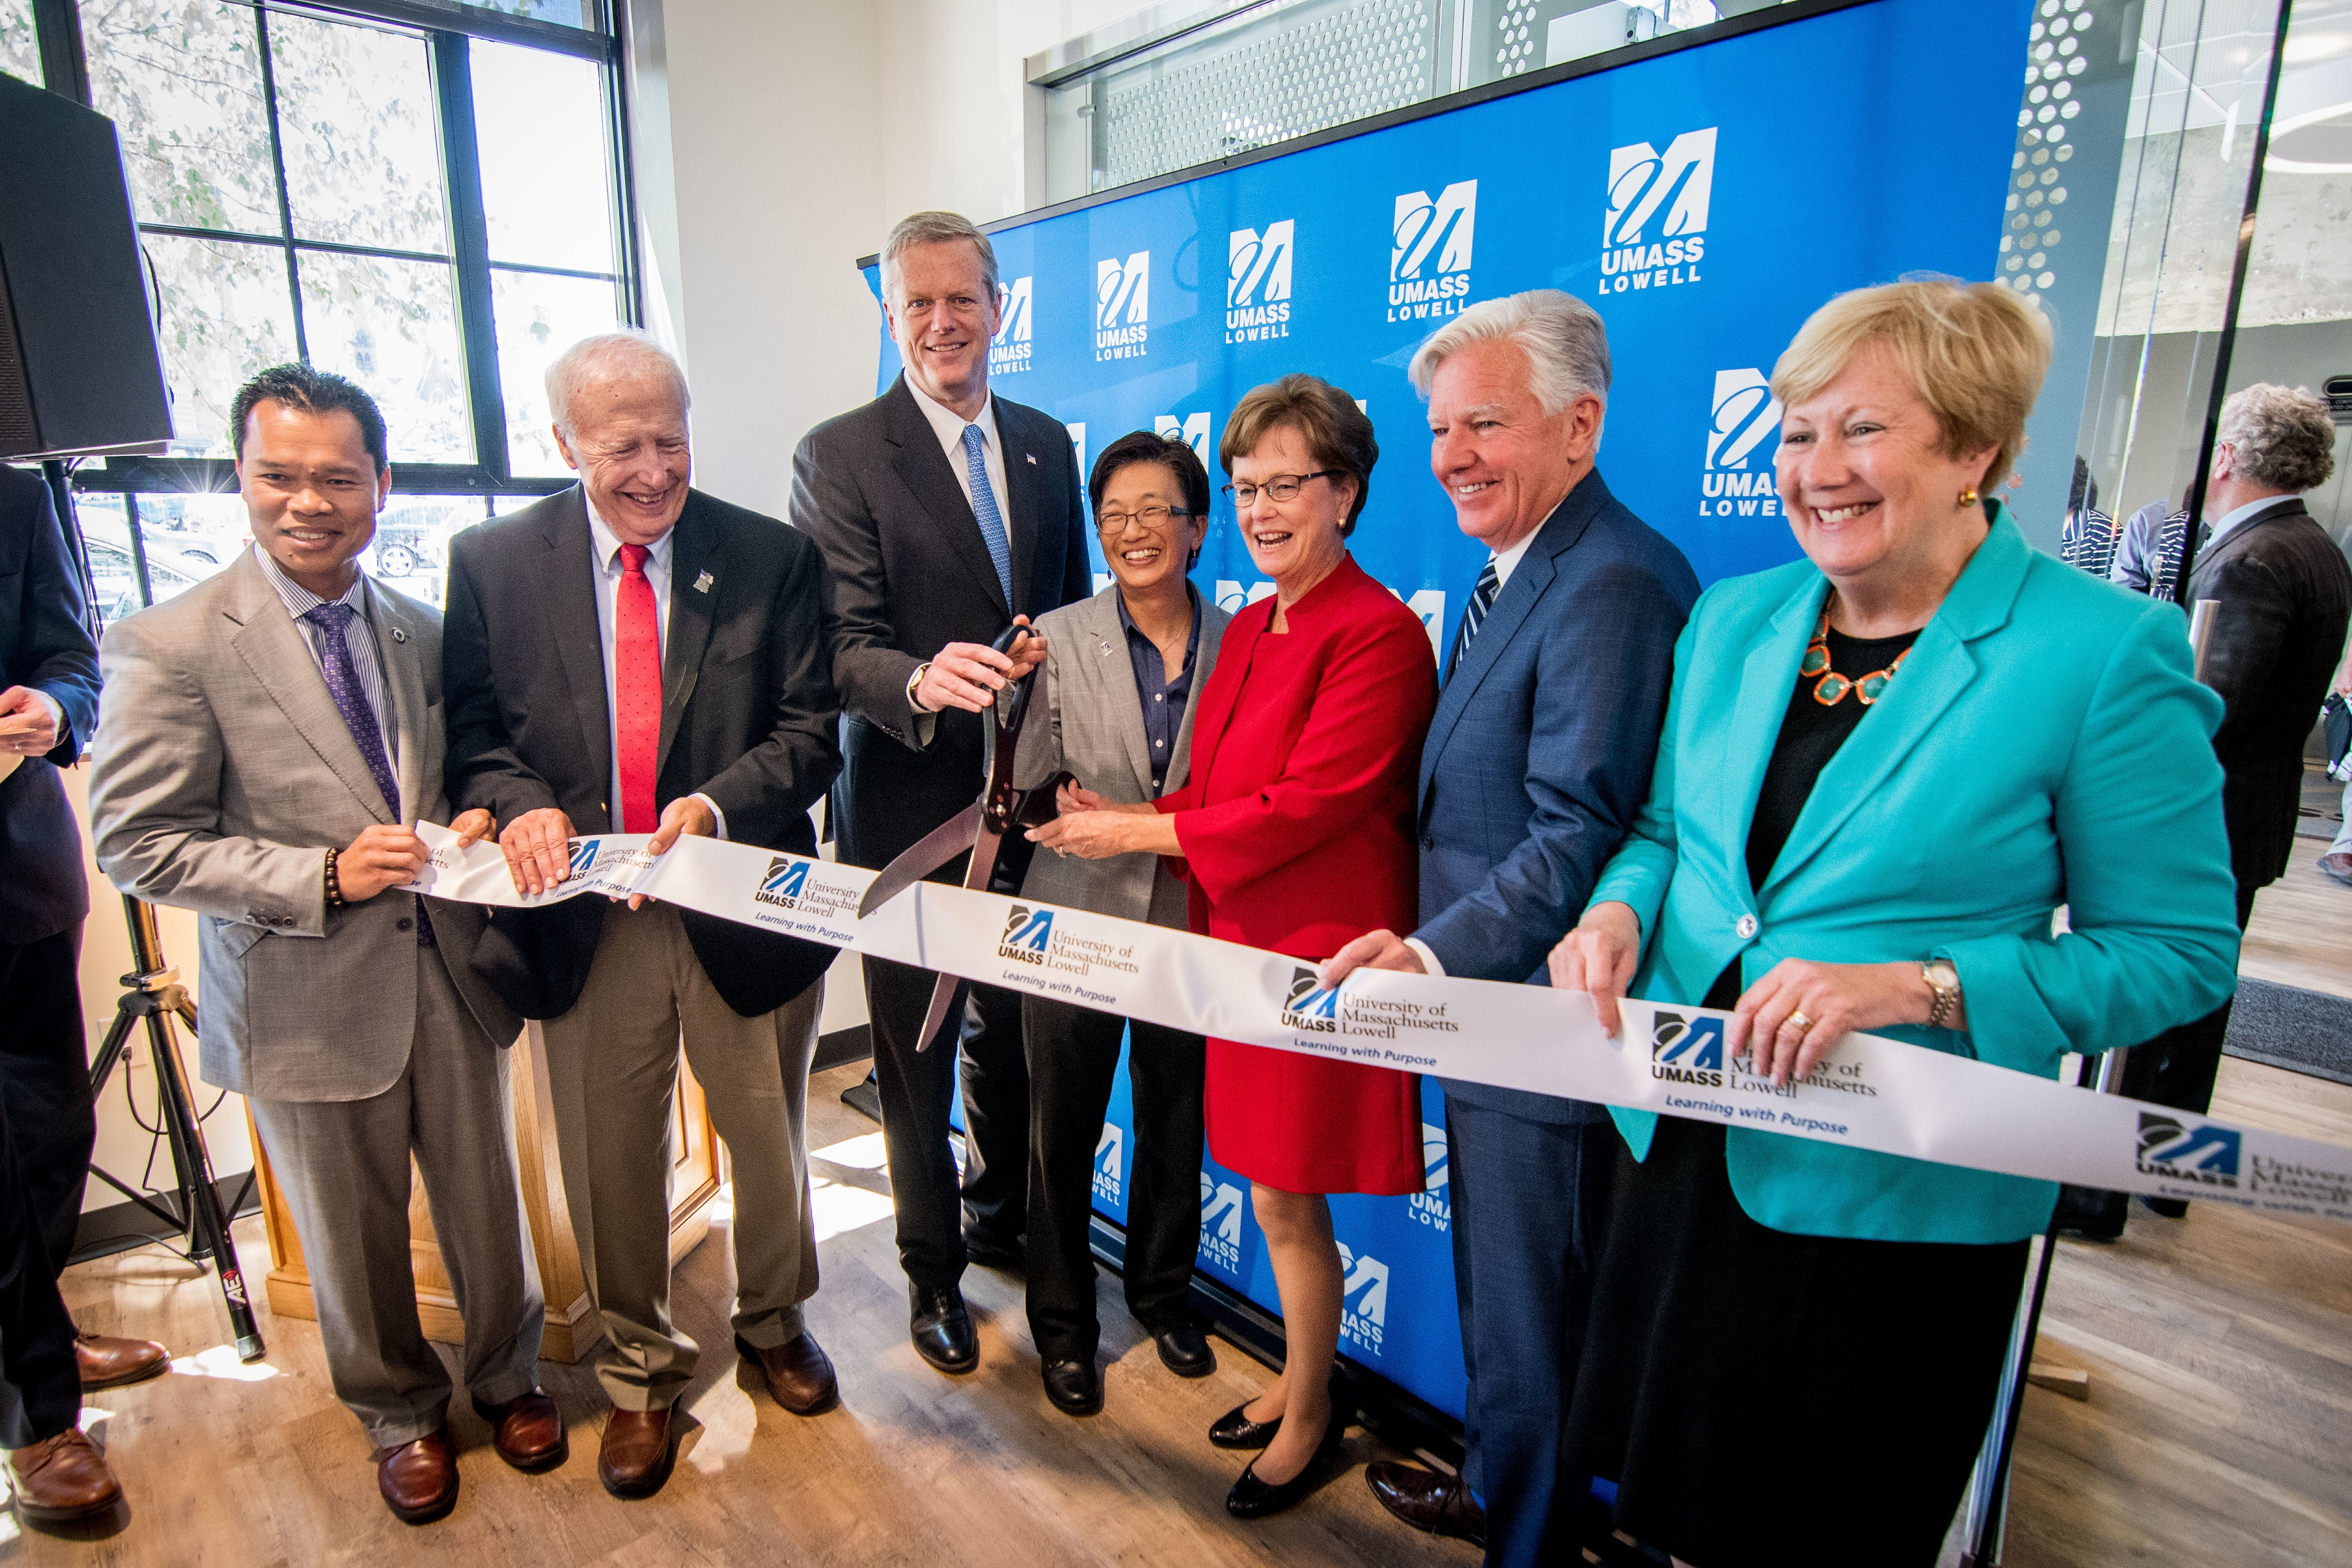 Governor Baker Announces $7 Million in New Advanced Manufacturing